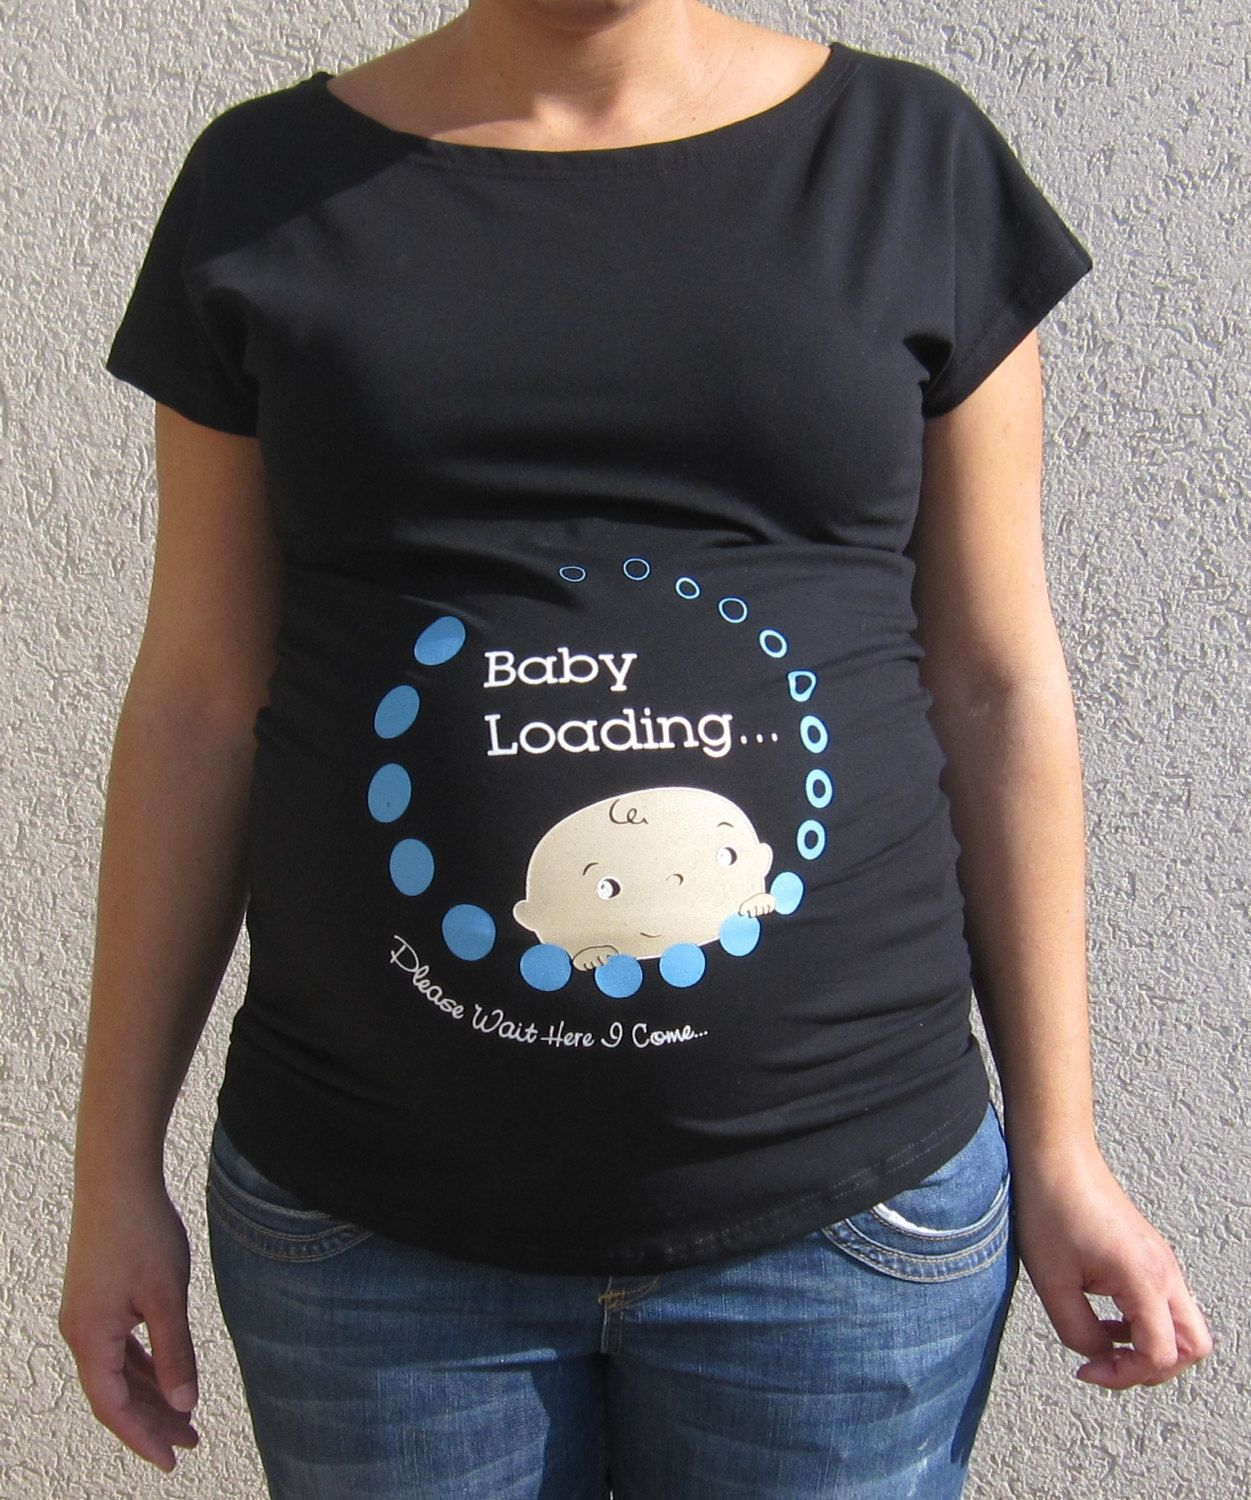 76a20c2e Funny 'Baby Loading' Maternity Shirts for Cool Moms | Robin Williams ...